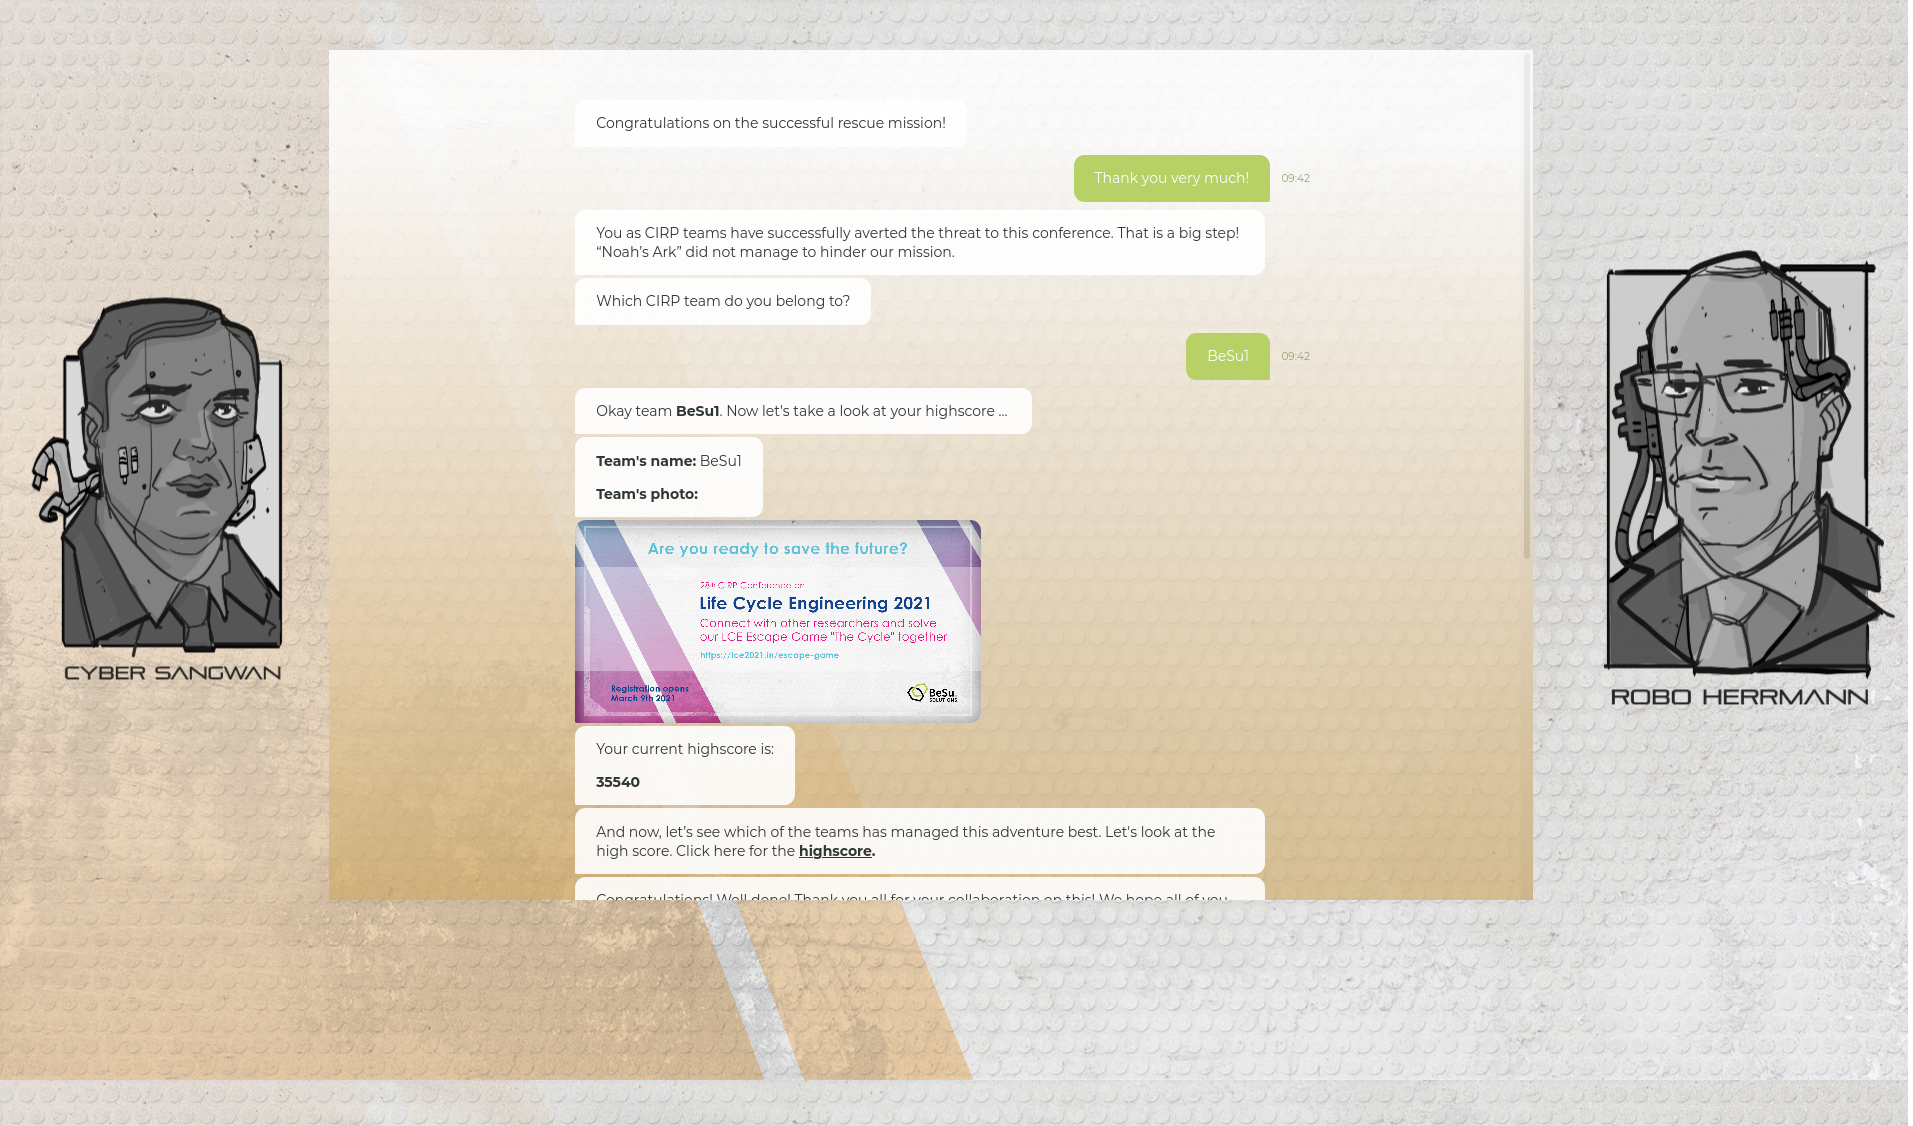 6.3 - Quest 5 und Outro - Screenshot Chatbot 3